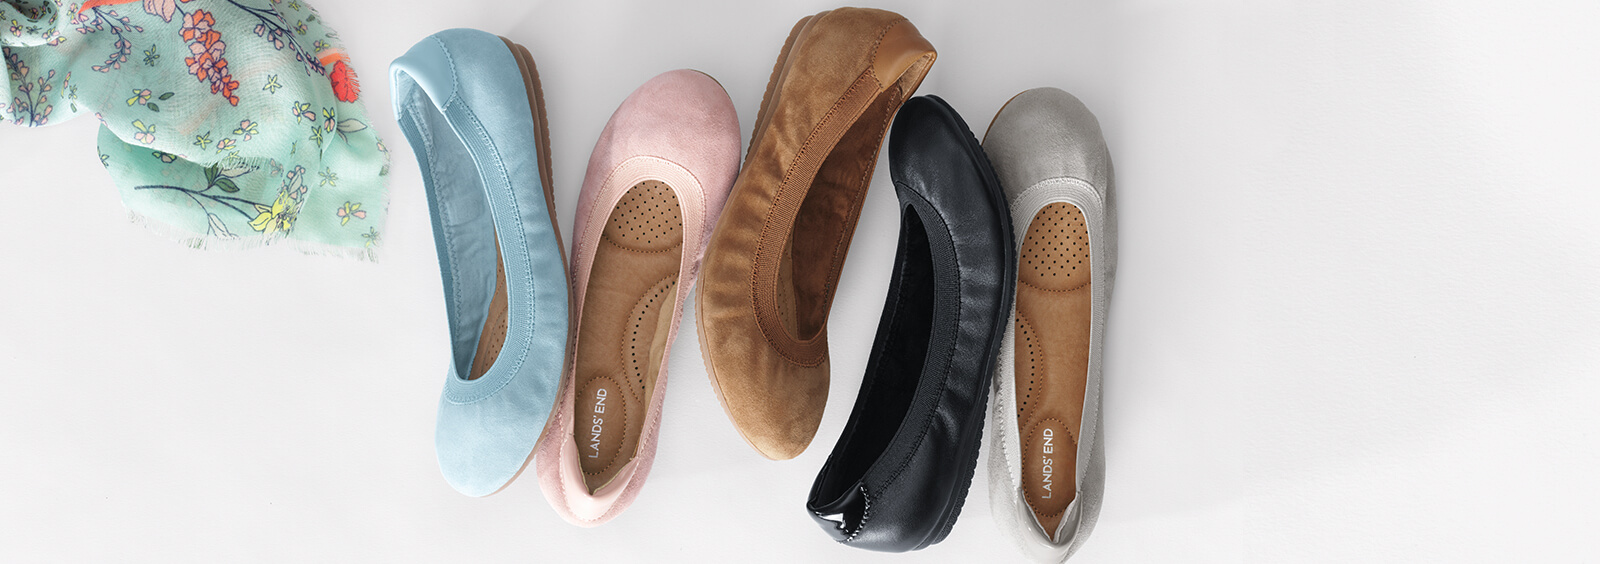 Women's Flats to Keep You Comfortable and Stylish at Work   Lands' End